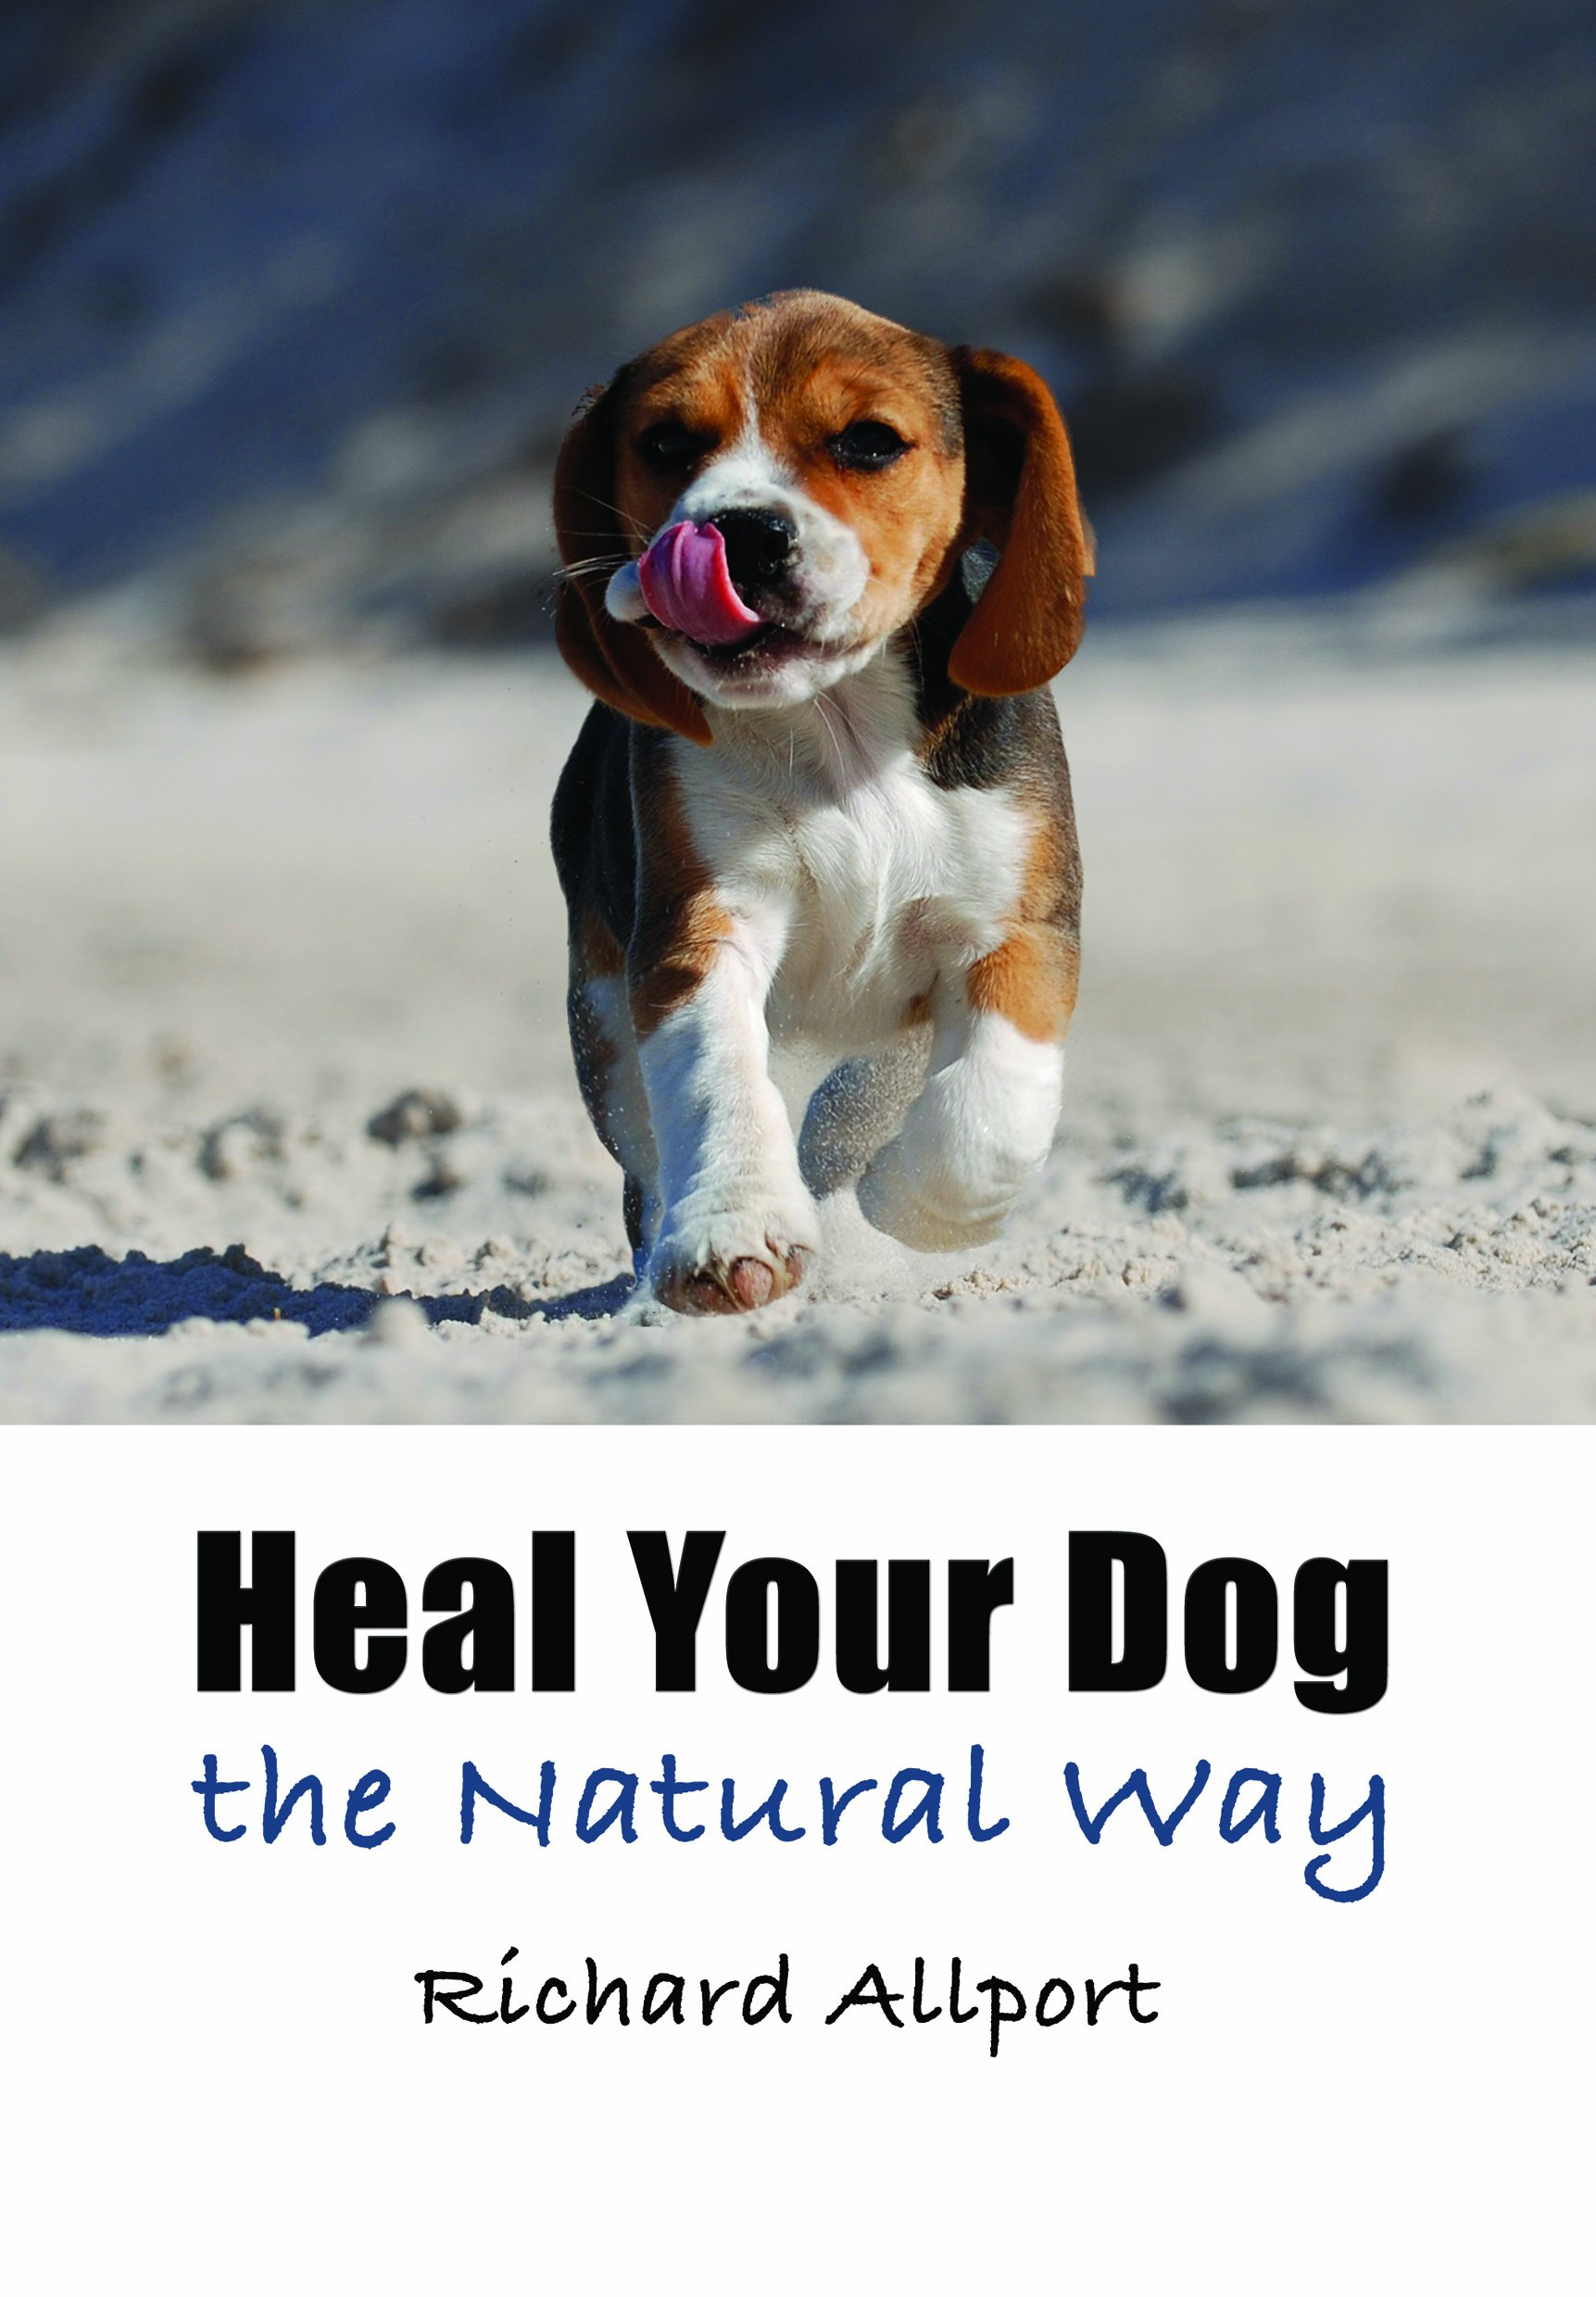 Canine herbal therapy - Heal Your Dog The Natural Way Richard Allport 9781844681105 Amazon Com Books